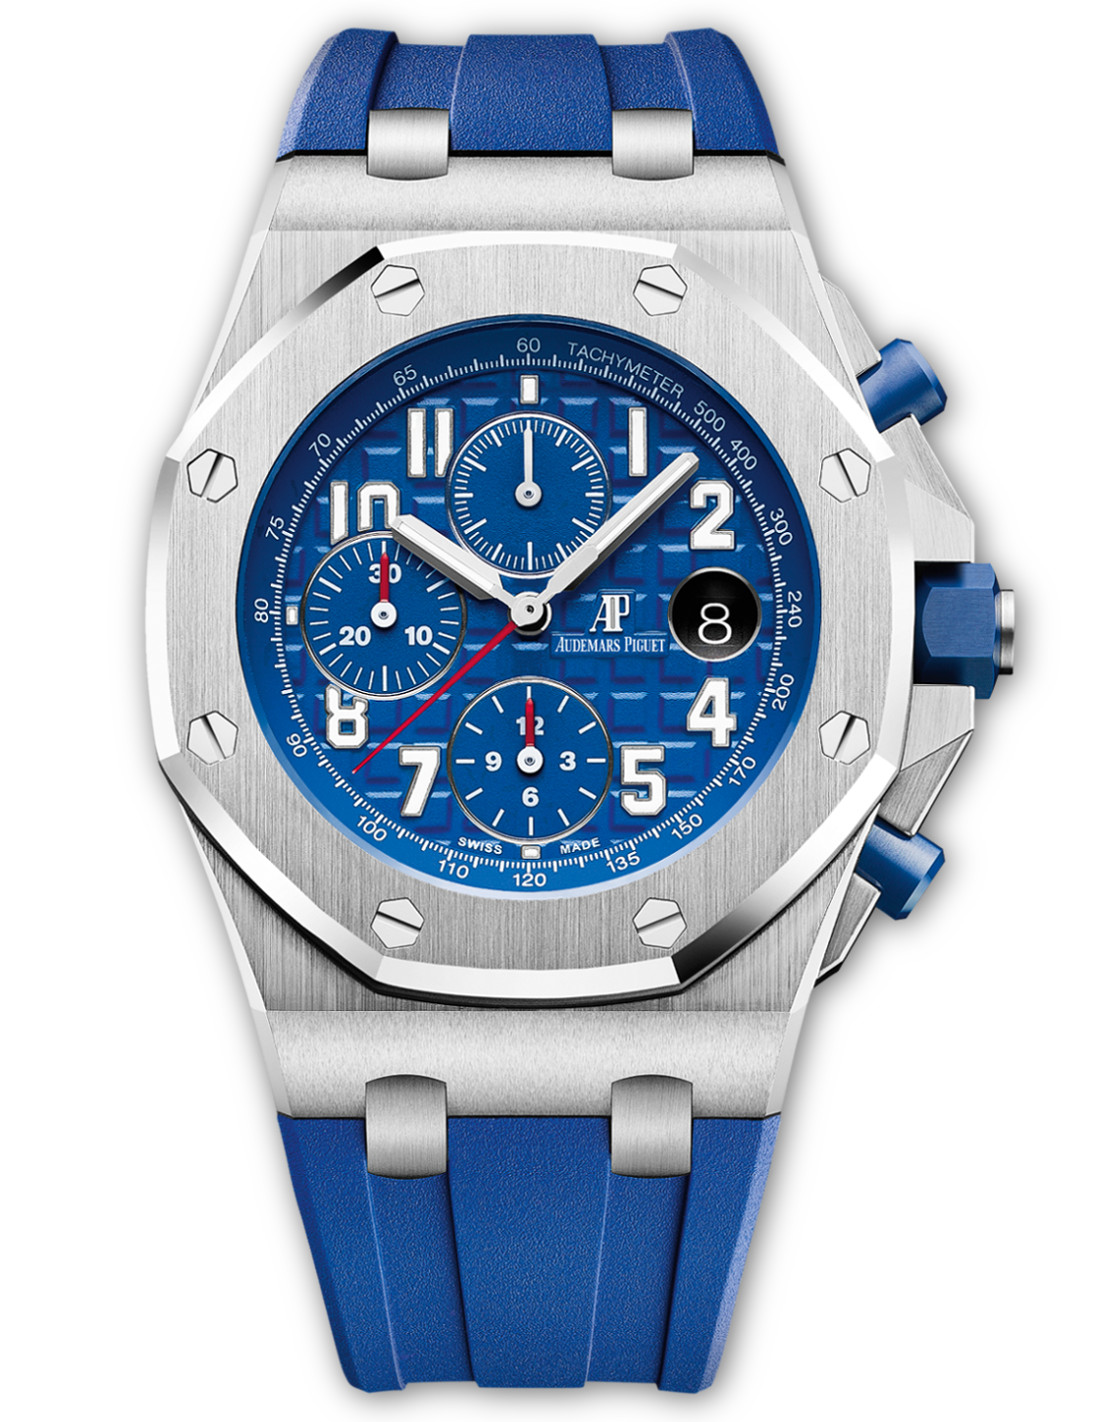 Audemars Piguet Royal Oak Offshore Modell 26470ST.OO.A030CA.01